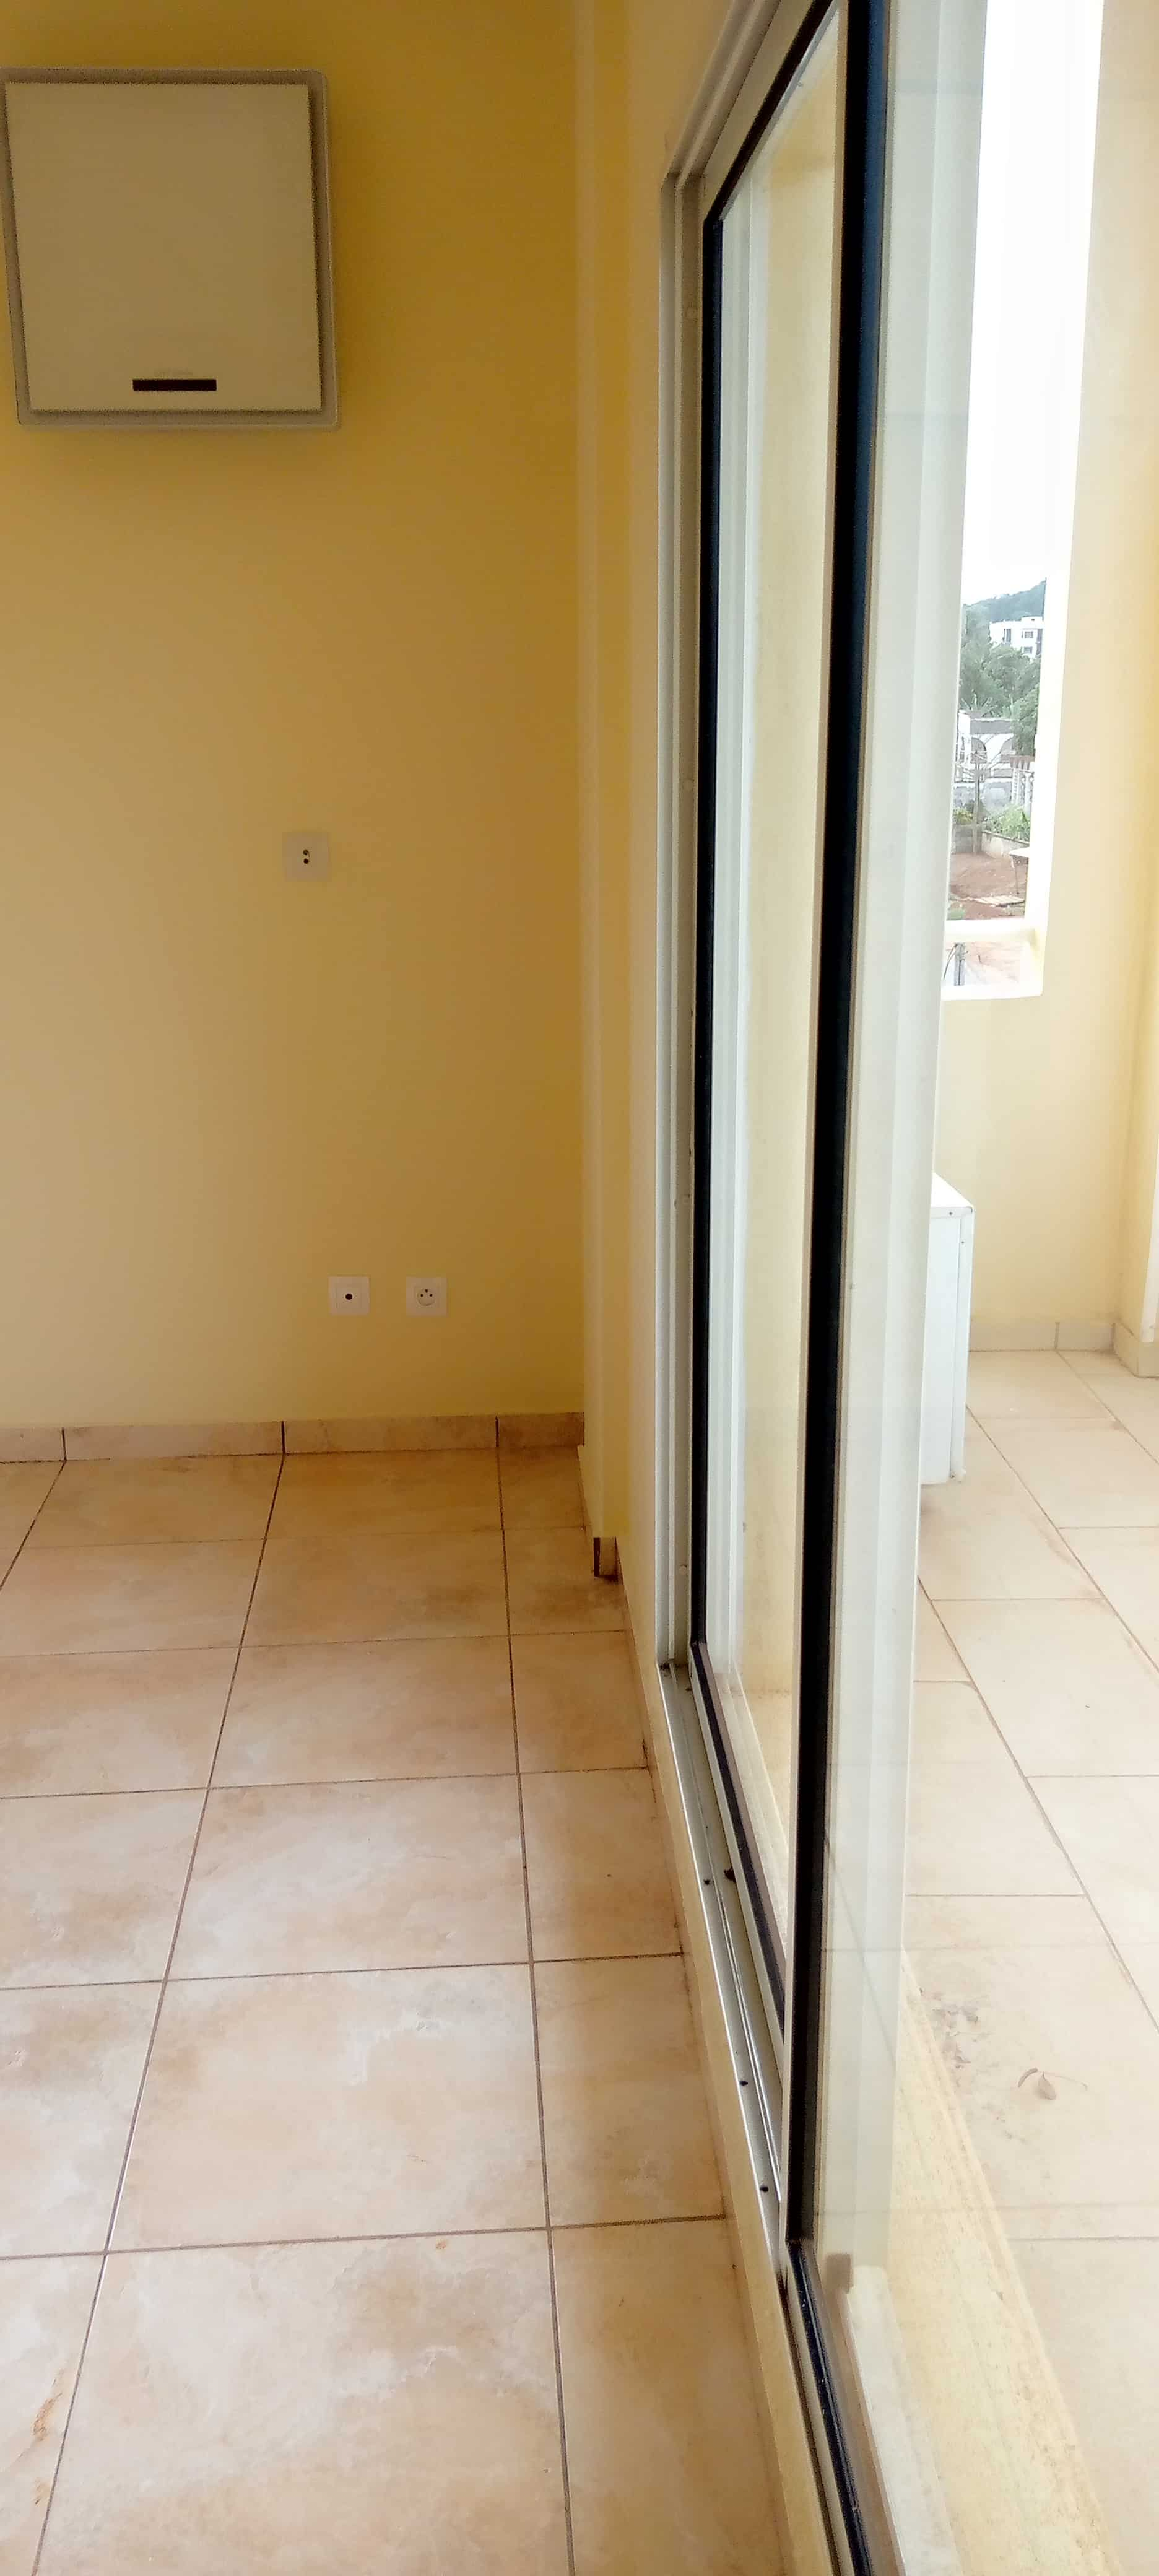 Apartment to rent - Yaoundé, Bastos, Dragage - 1 living room(s), 2 bedroom(s), 3 bathroom(s) - 480 000 FCFA / month